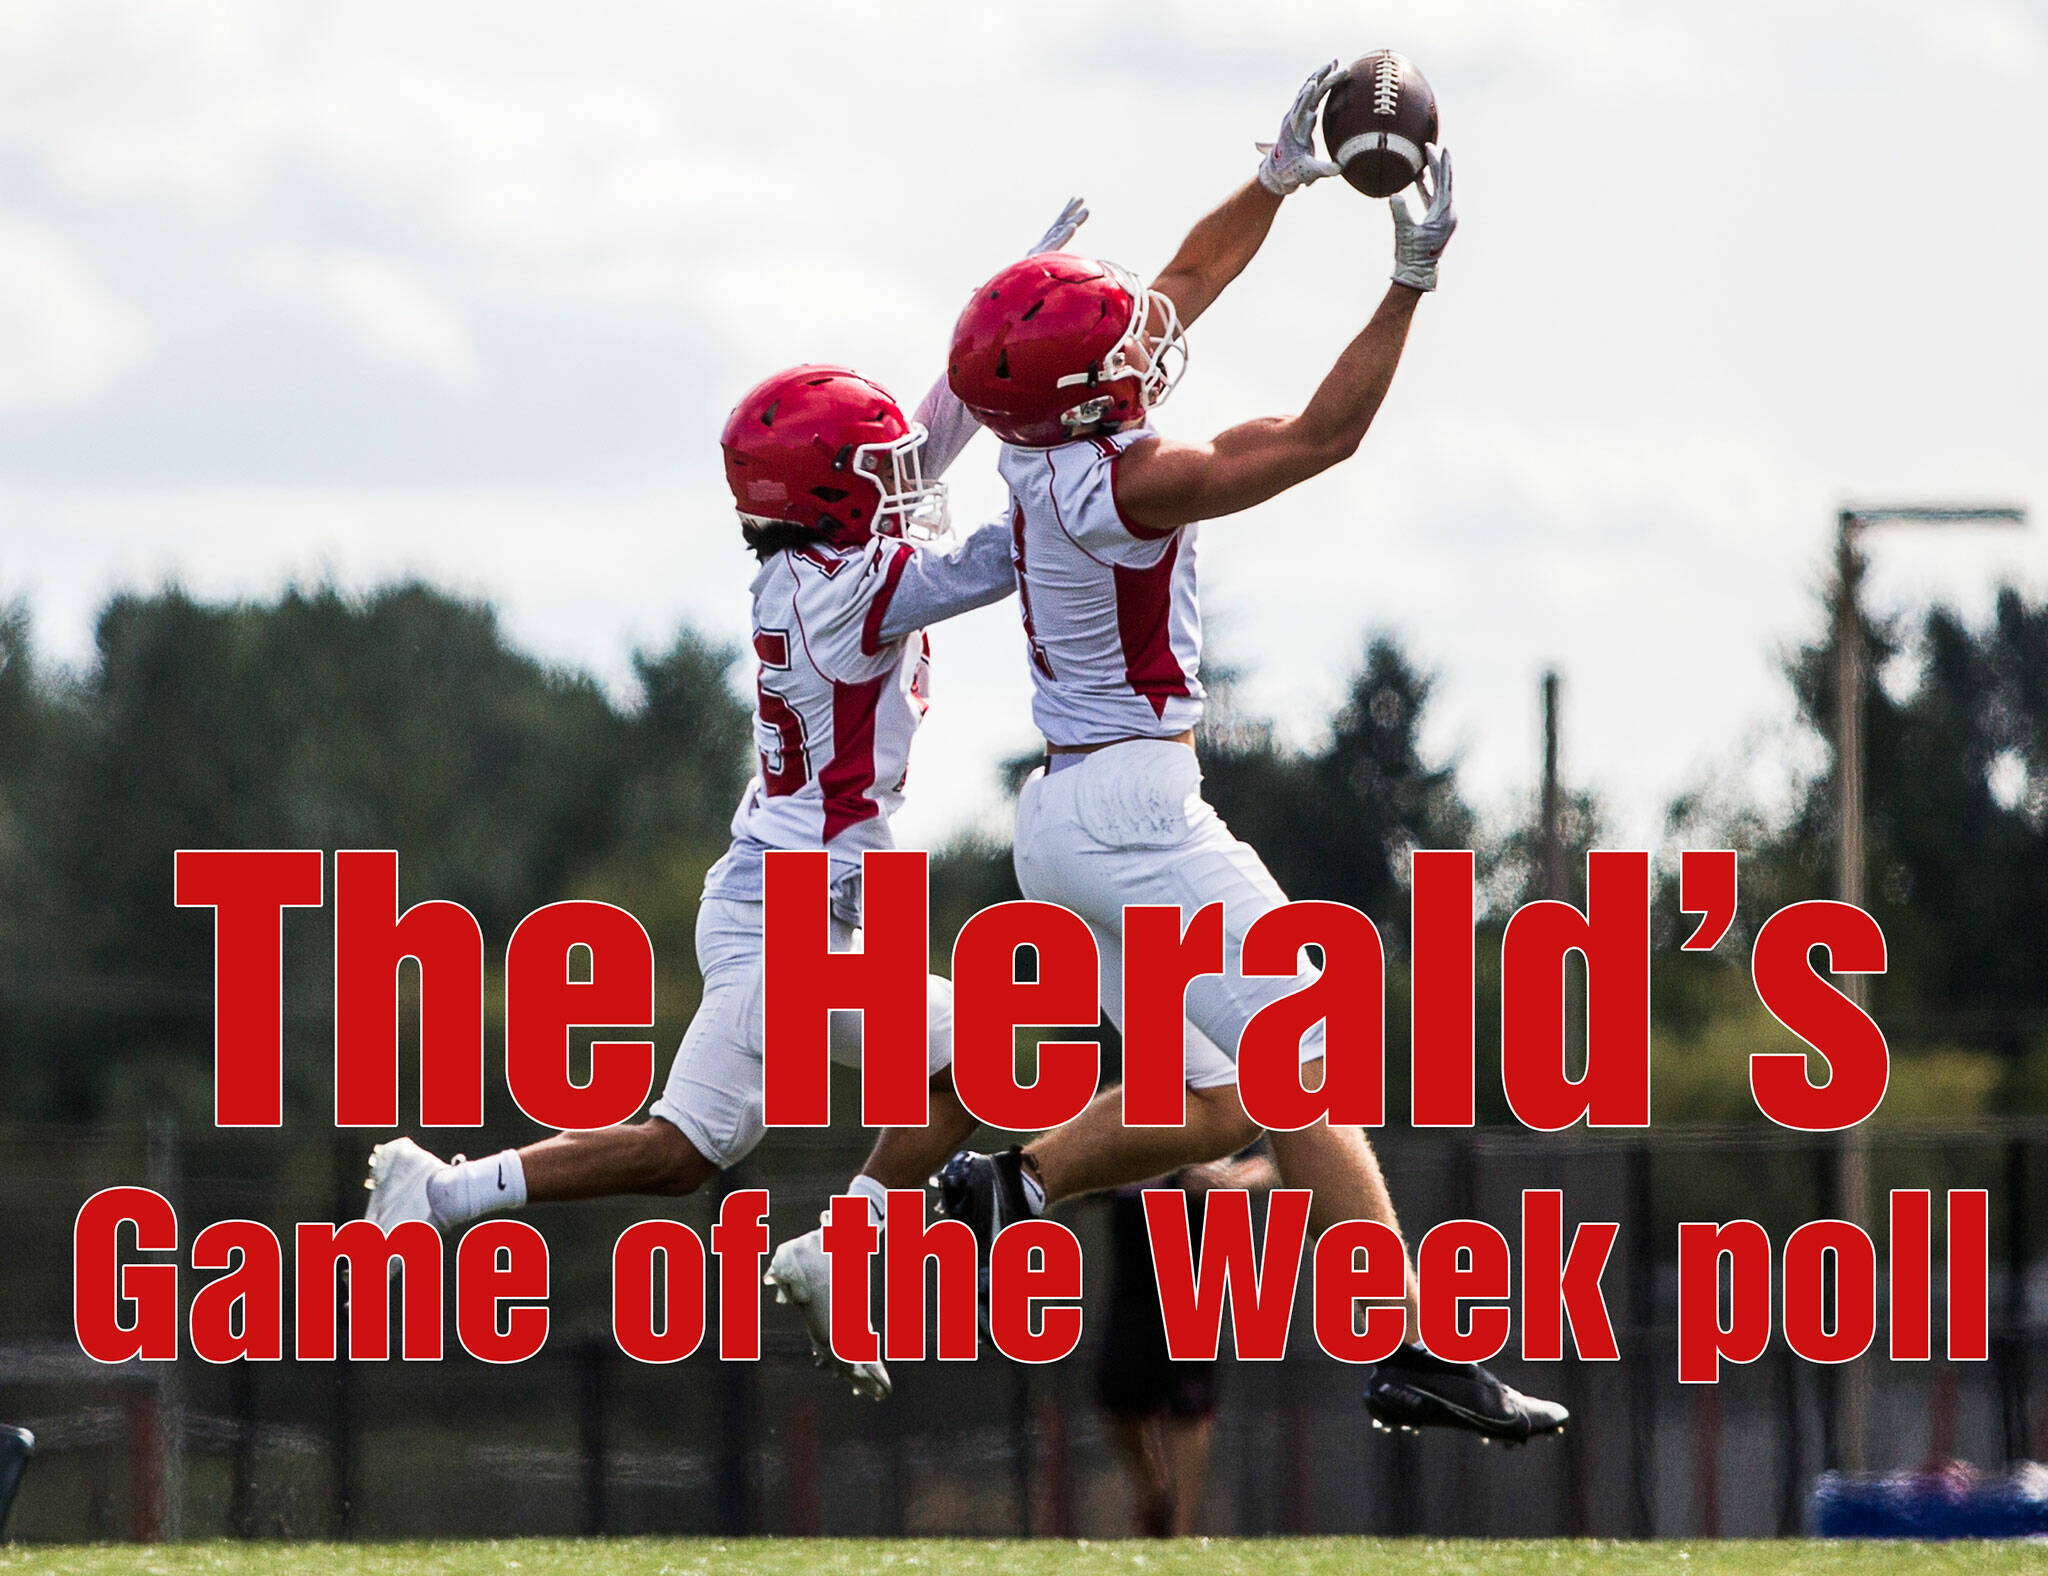 Marysville-Pilchuck's Darren Johnson-Jones, left, tries to block a pass to Miguel Chavez, right, during football practice on Thursday, Aug. 19, 2021 in Marysville, Wash. (Olivia Vanni / The Herald)